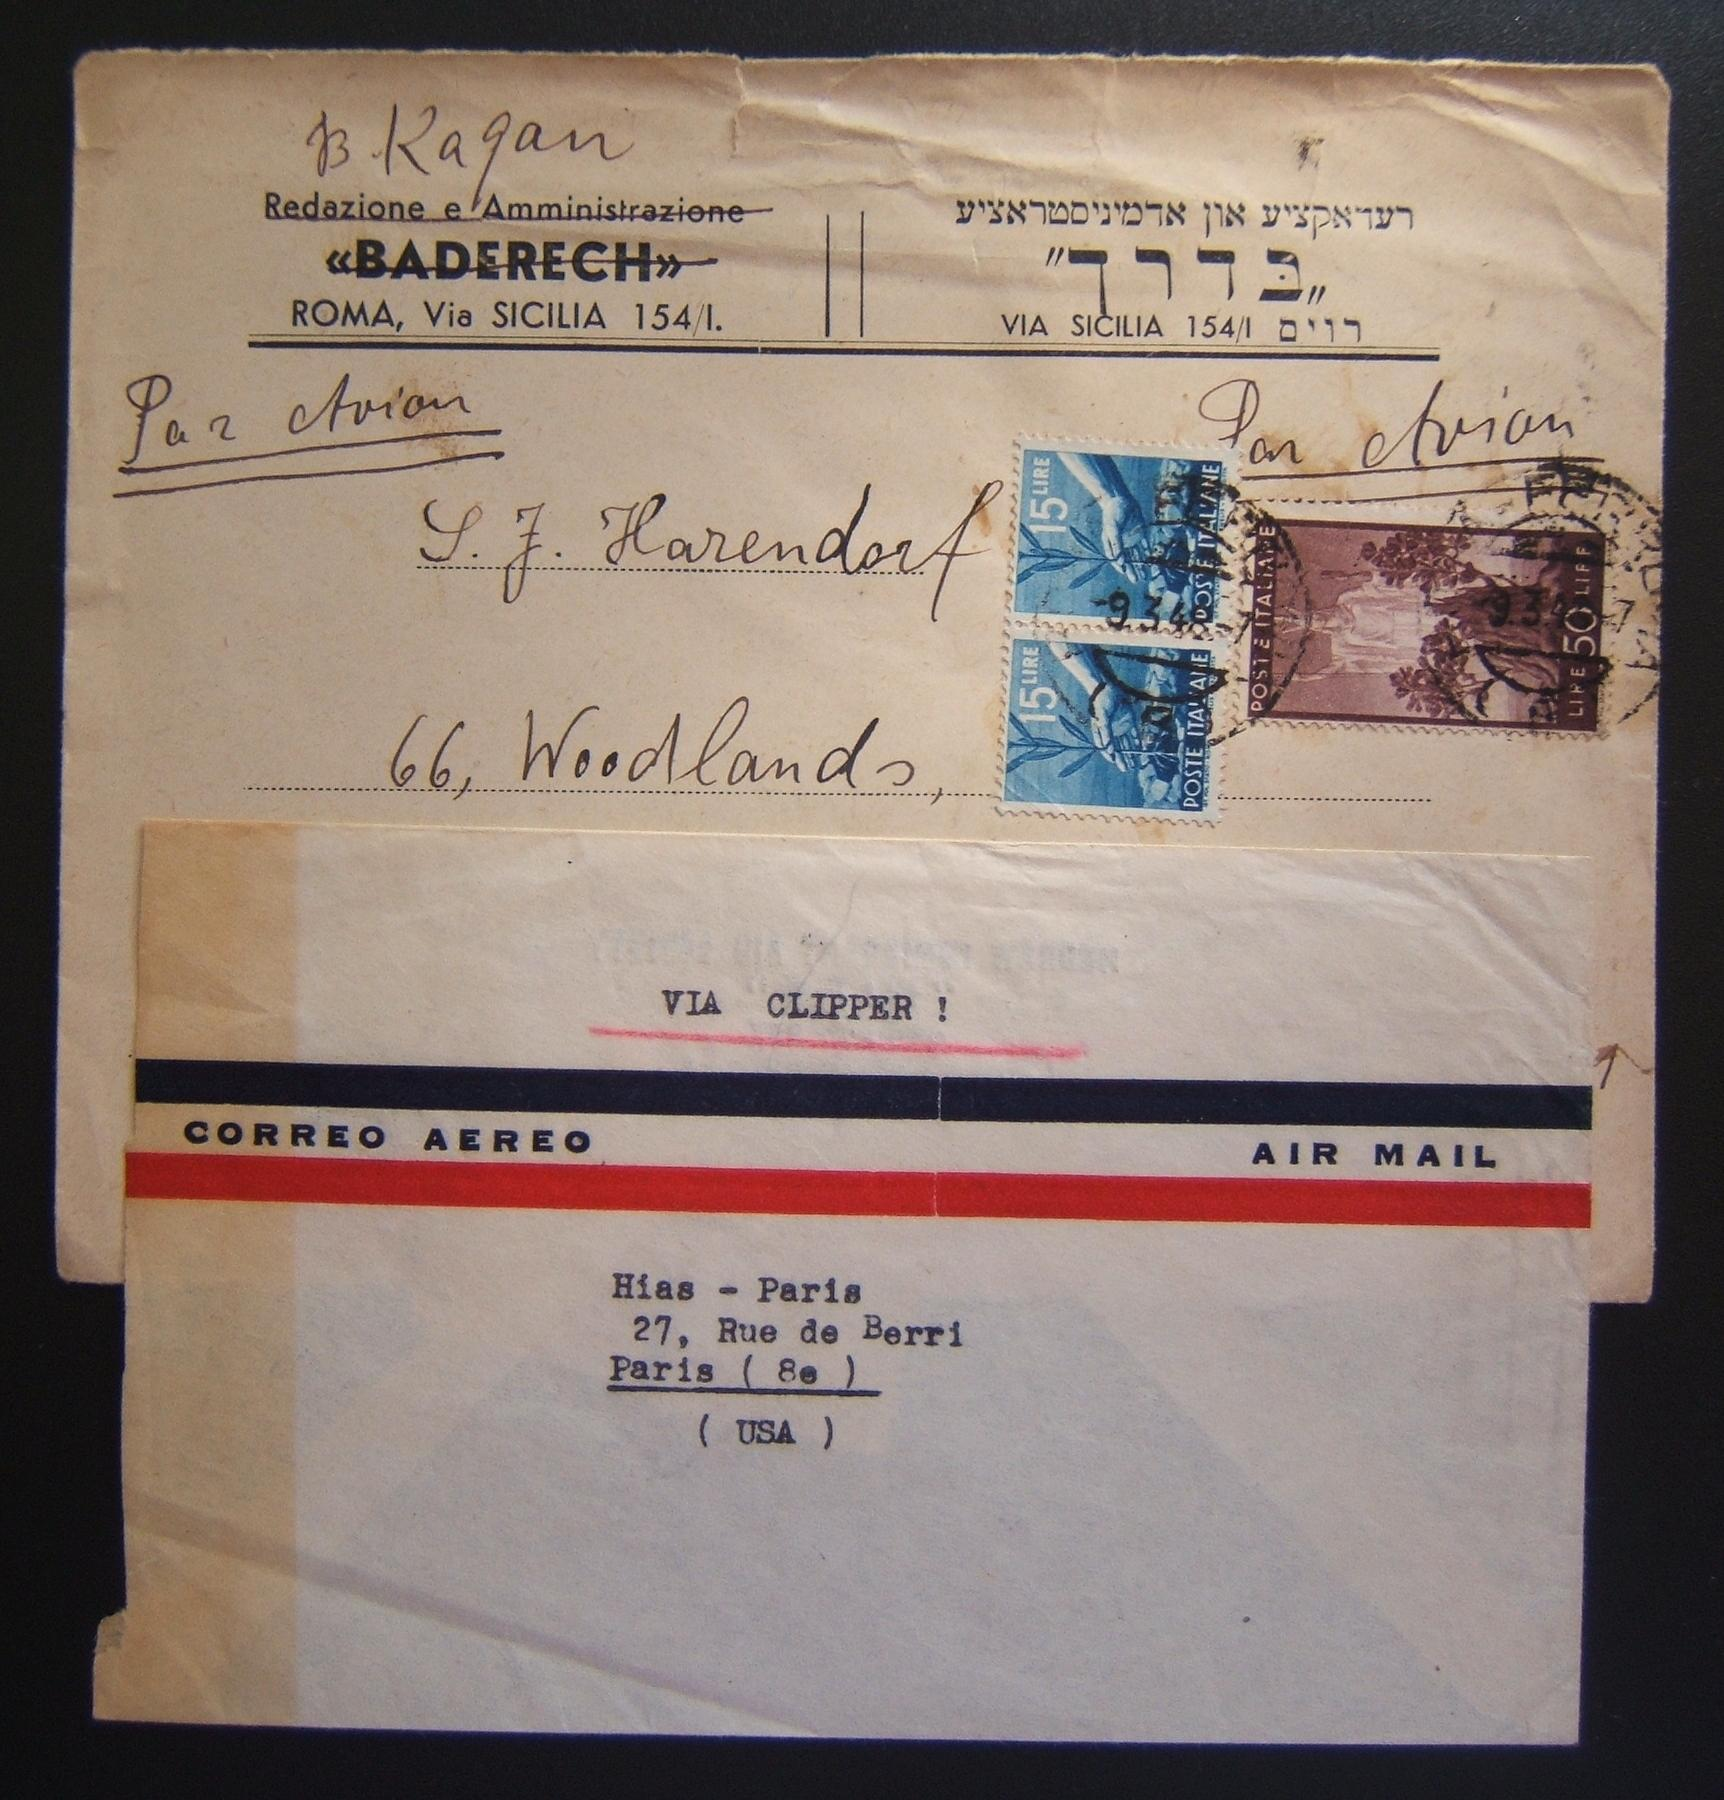 Post-Holocaust 2pc Jewish mail: 1) Hebrew Immigrant Aid Society (HIAS) stationary bilingual airmail cv ex Ecuador 10 MAR 1947 to Paris by Pan Am Clipper; franked 4 Sucres rate, cut